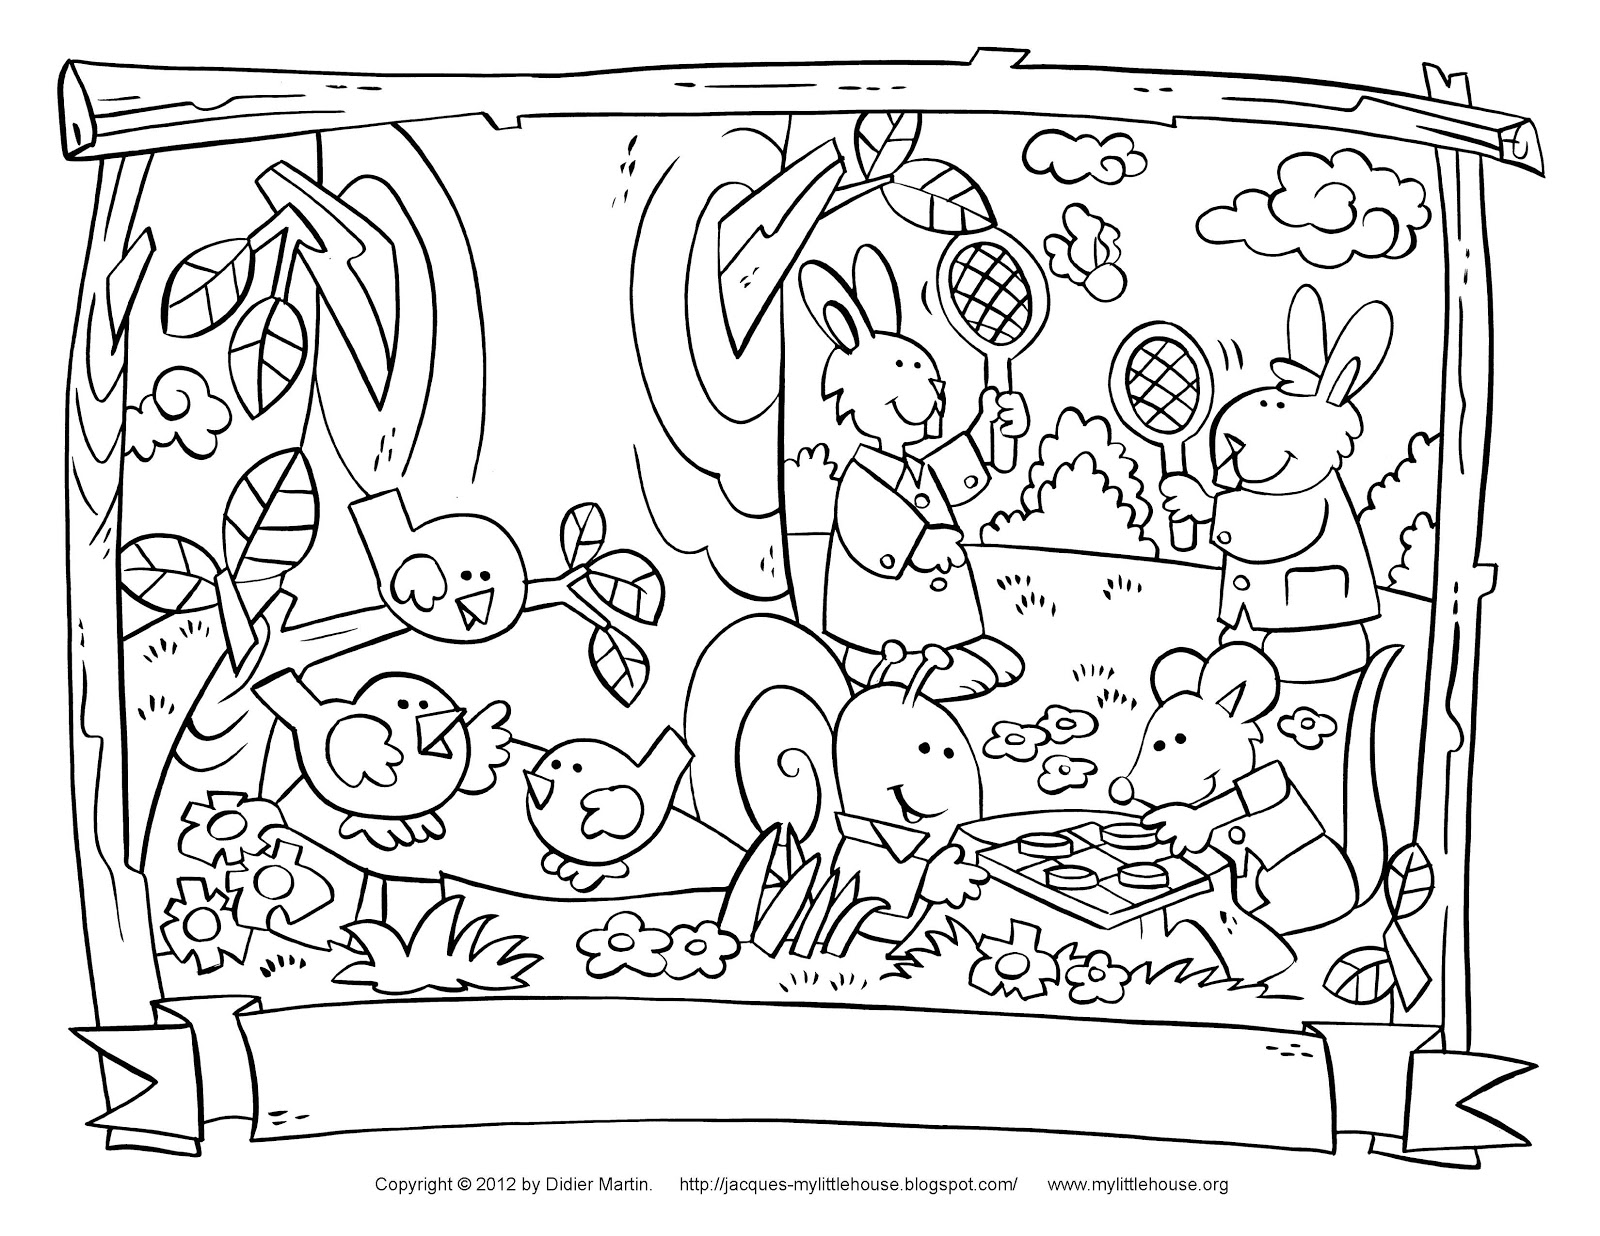 My Little House: School Days Coloring Pages